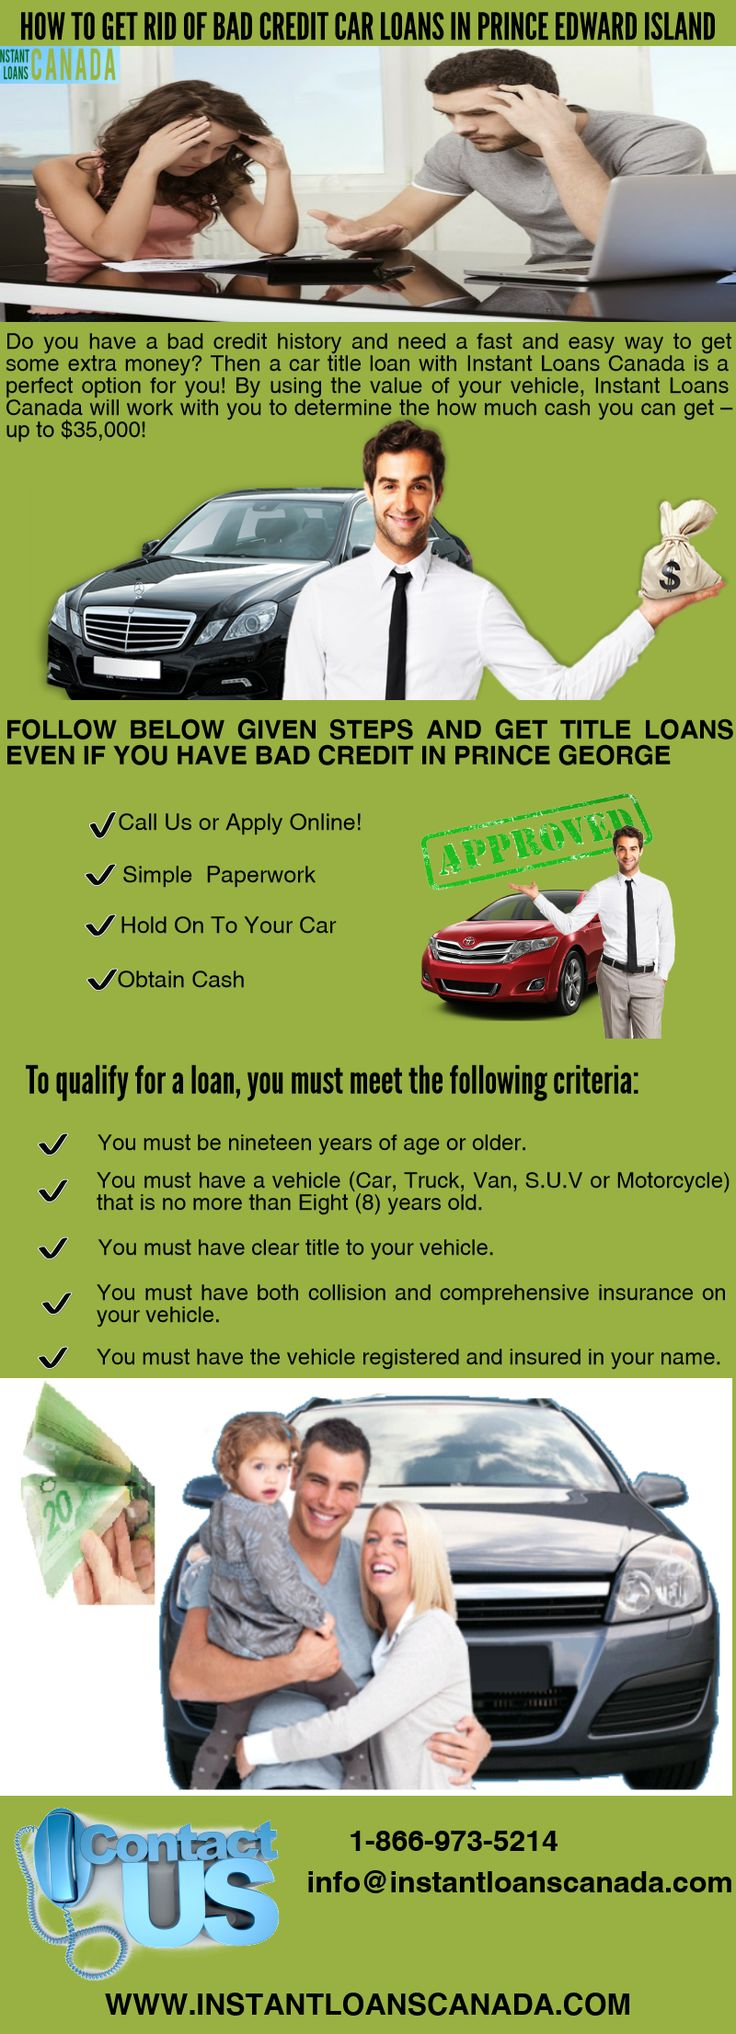 If you want to get rid of bad credit in Prince Edward island then just go with Instant loans Canada as we provide title loans with no pre payment penalties. For more details visit http://www.instantloanscanada.com/how-to-deal-with-a-bad-credit-score-with-the-help-of-a-car-title-loan-in-winnipeg